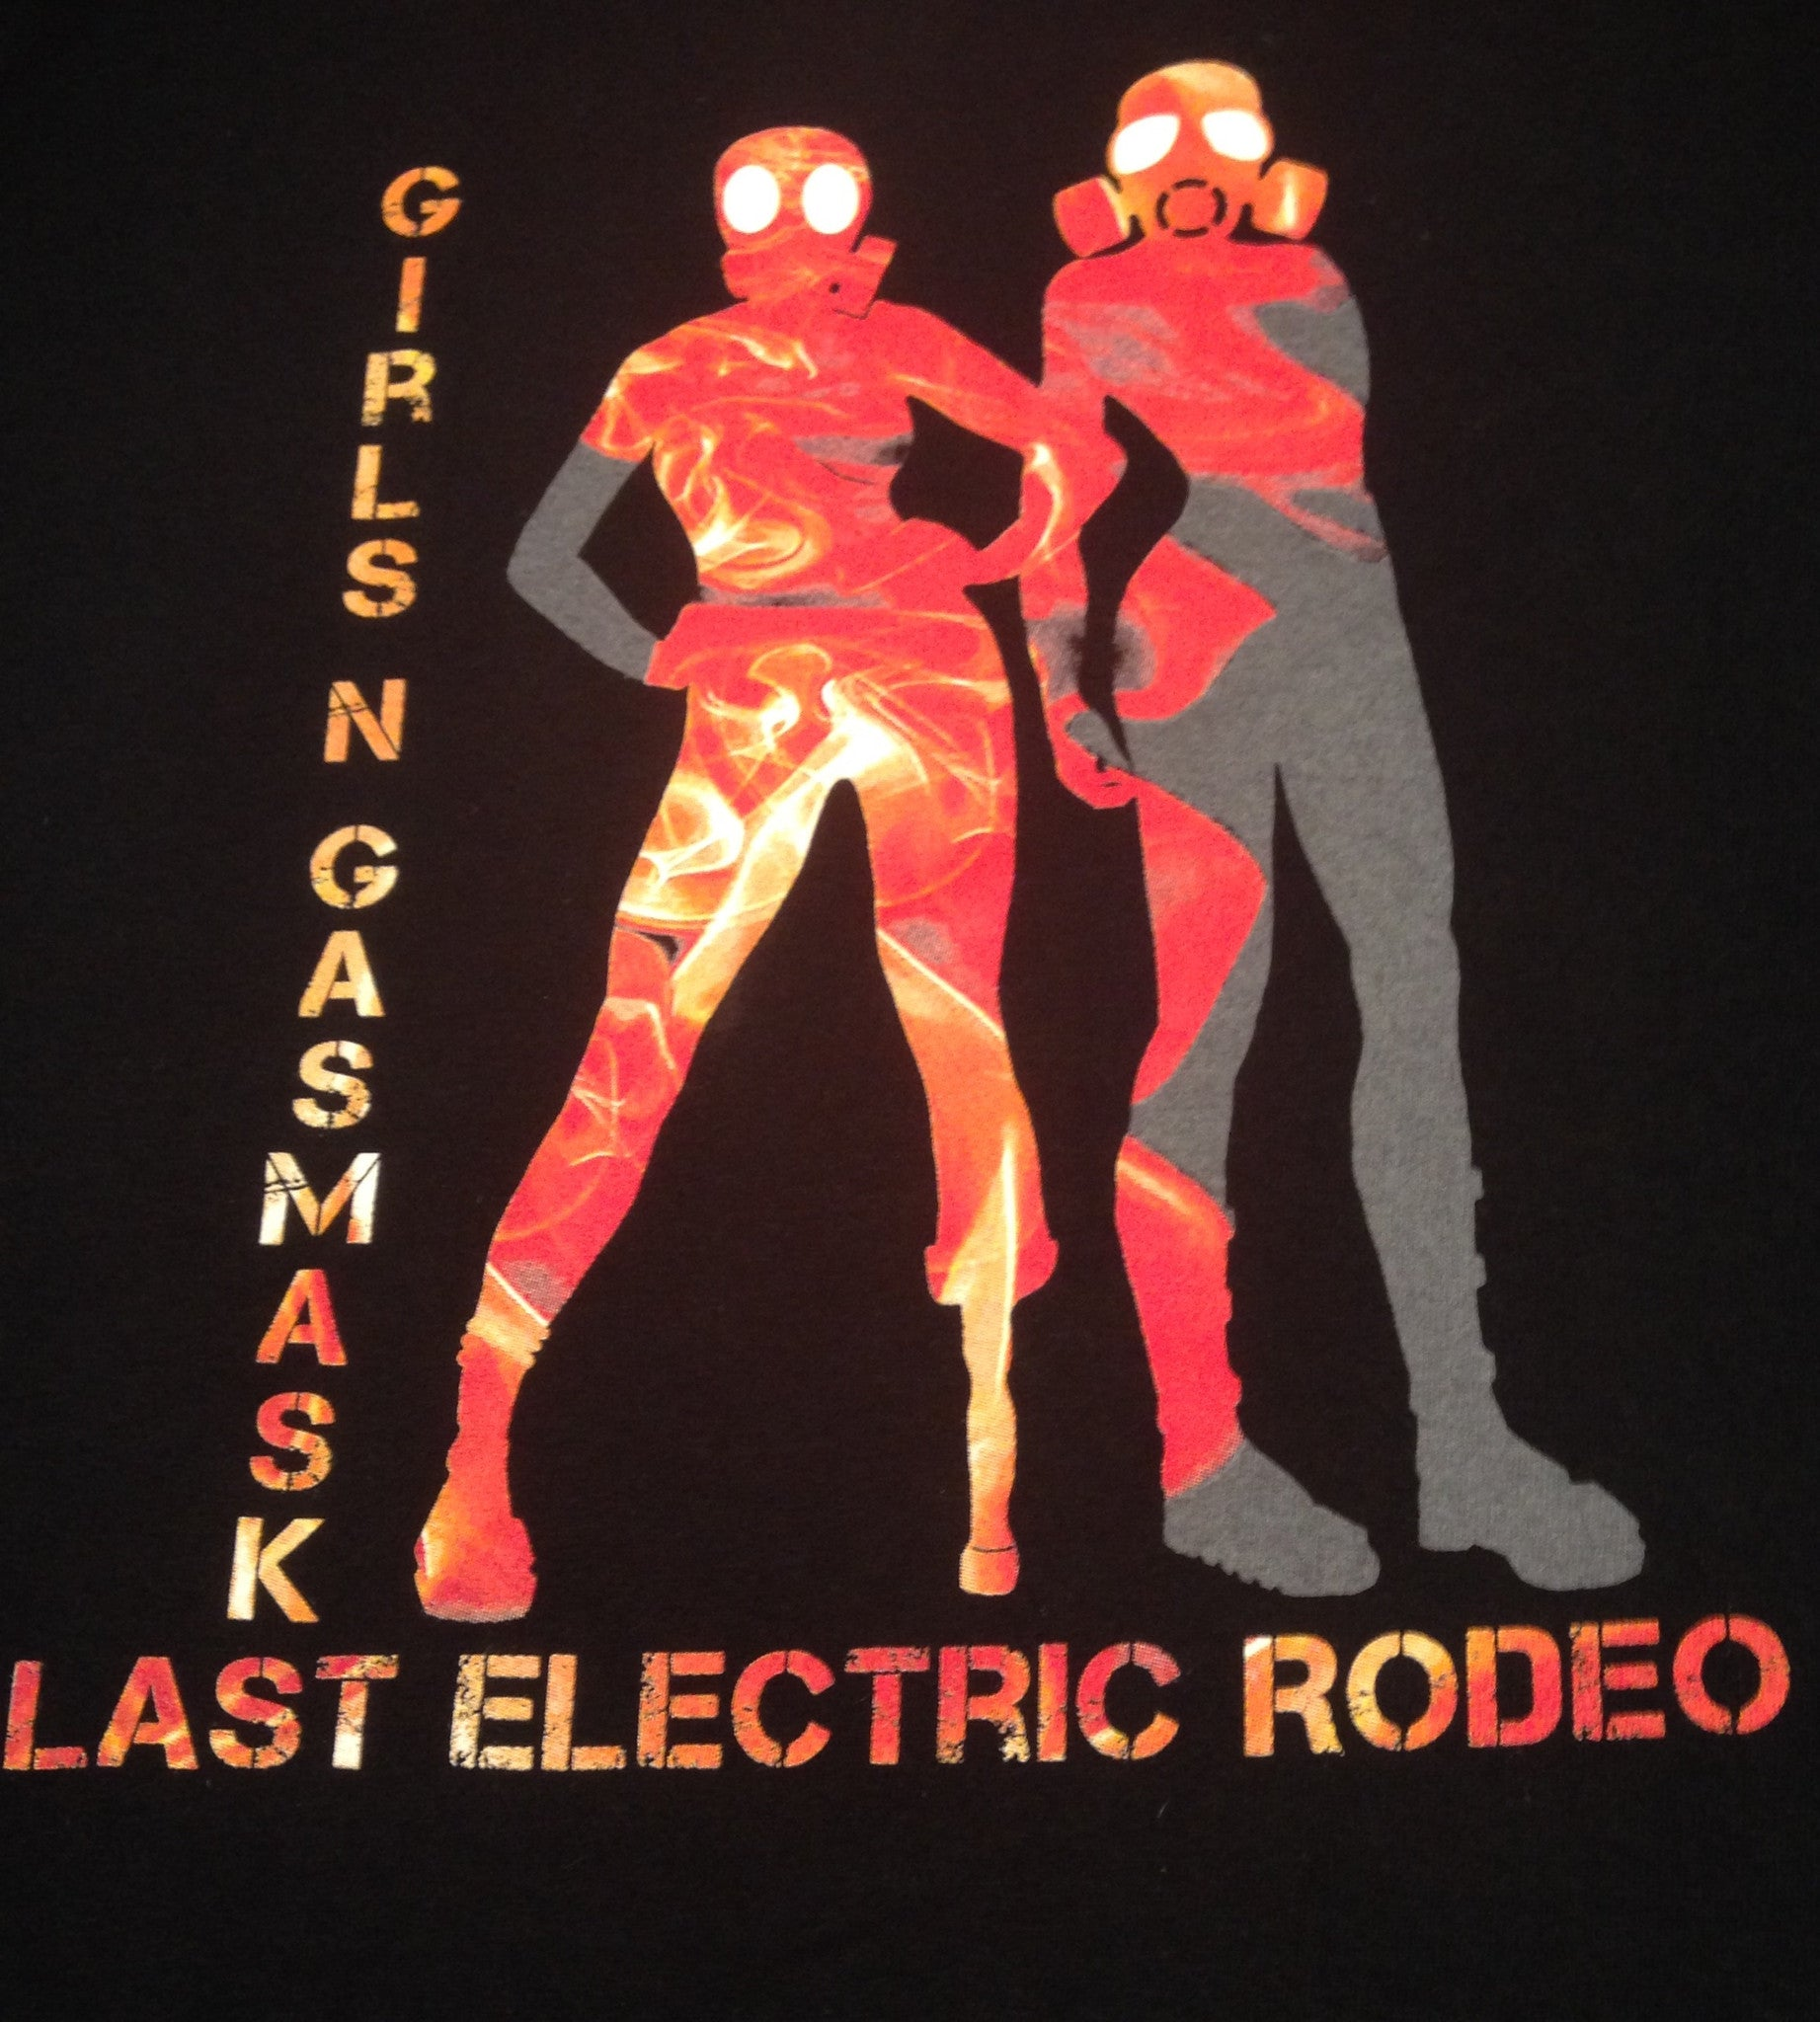 Last Electric Rodeo Tee Shirt